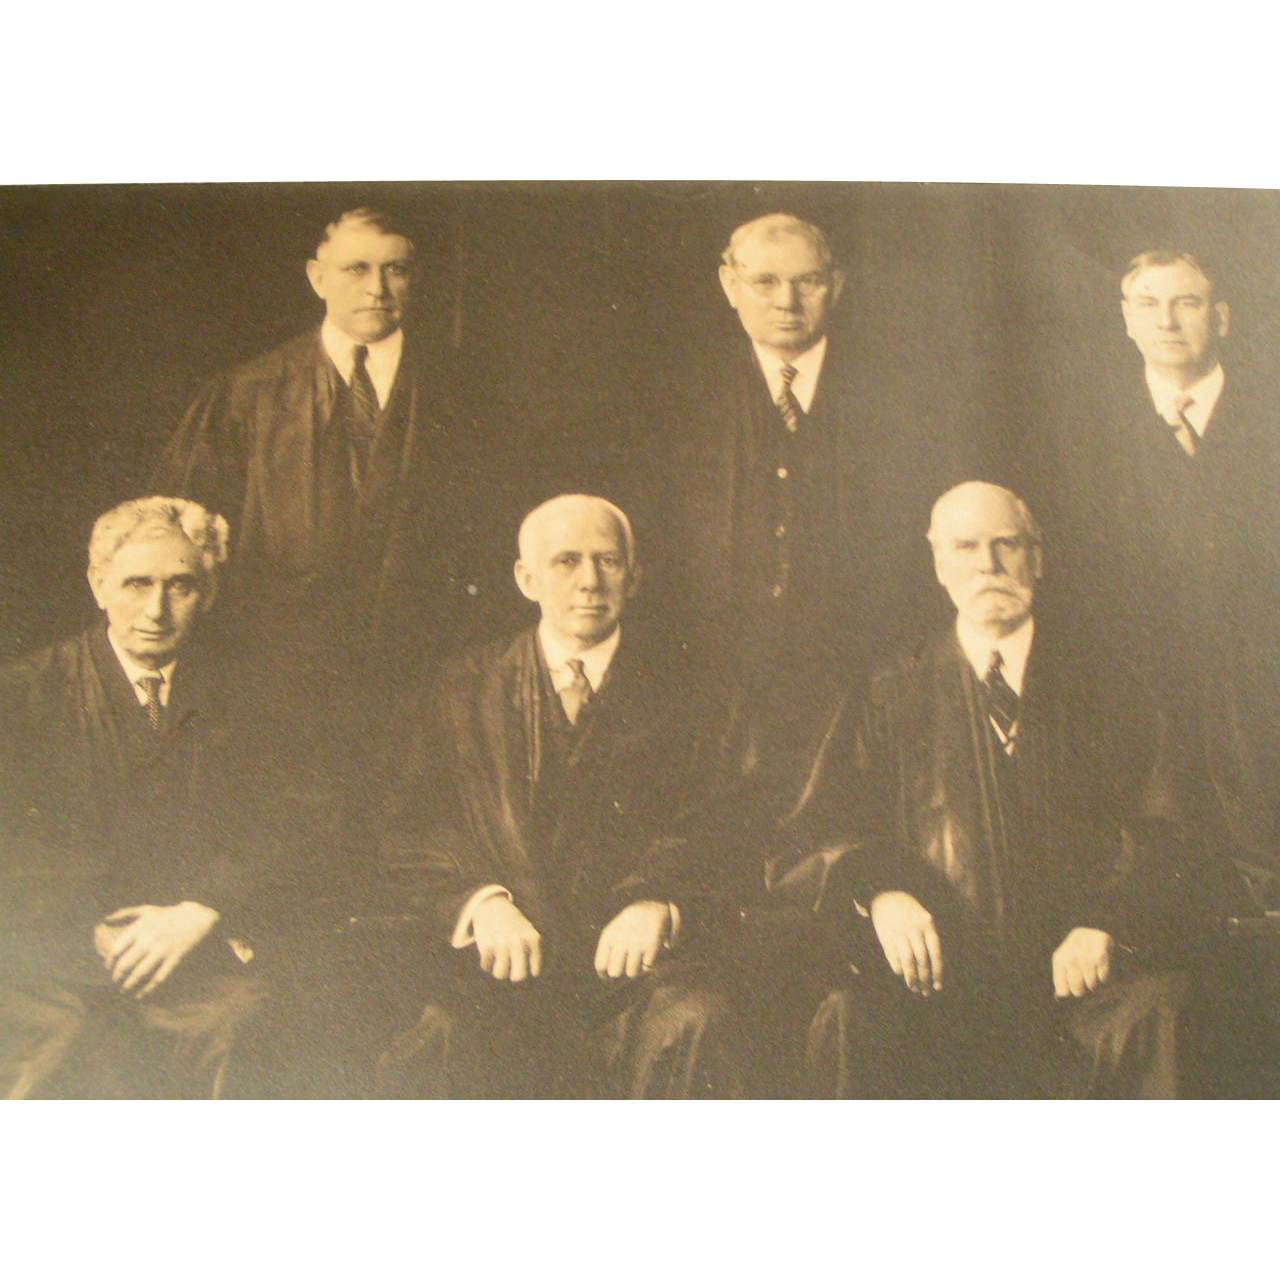 Historic Supreme Court 1932 Photo Portrait